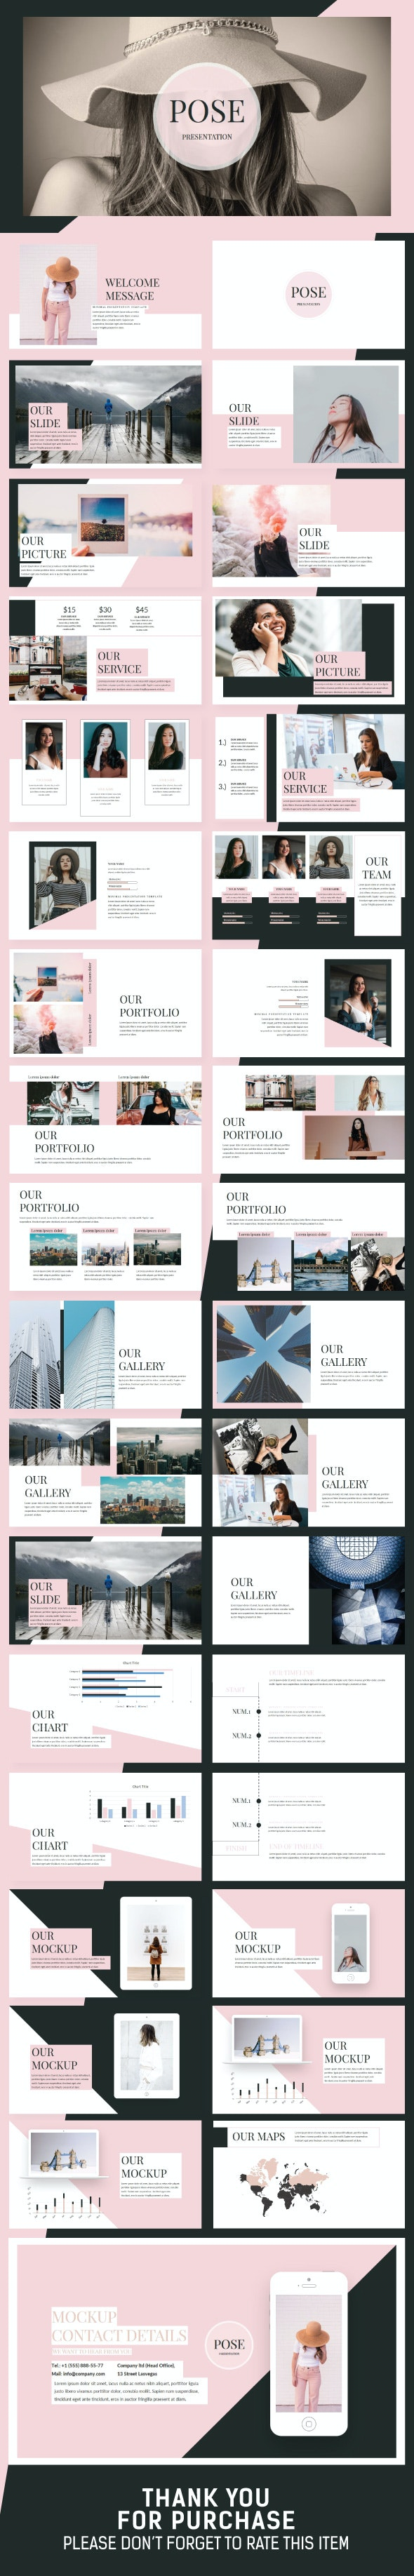 Pose Minimal Keynote Template - Creative Keynote Templates